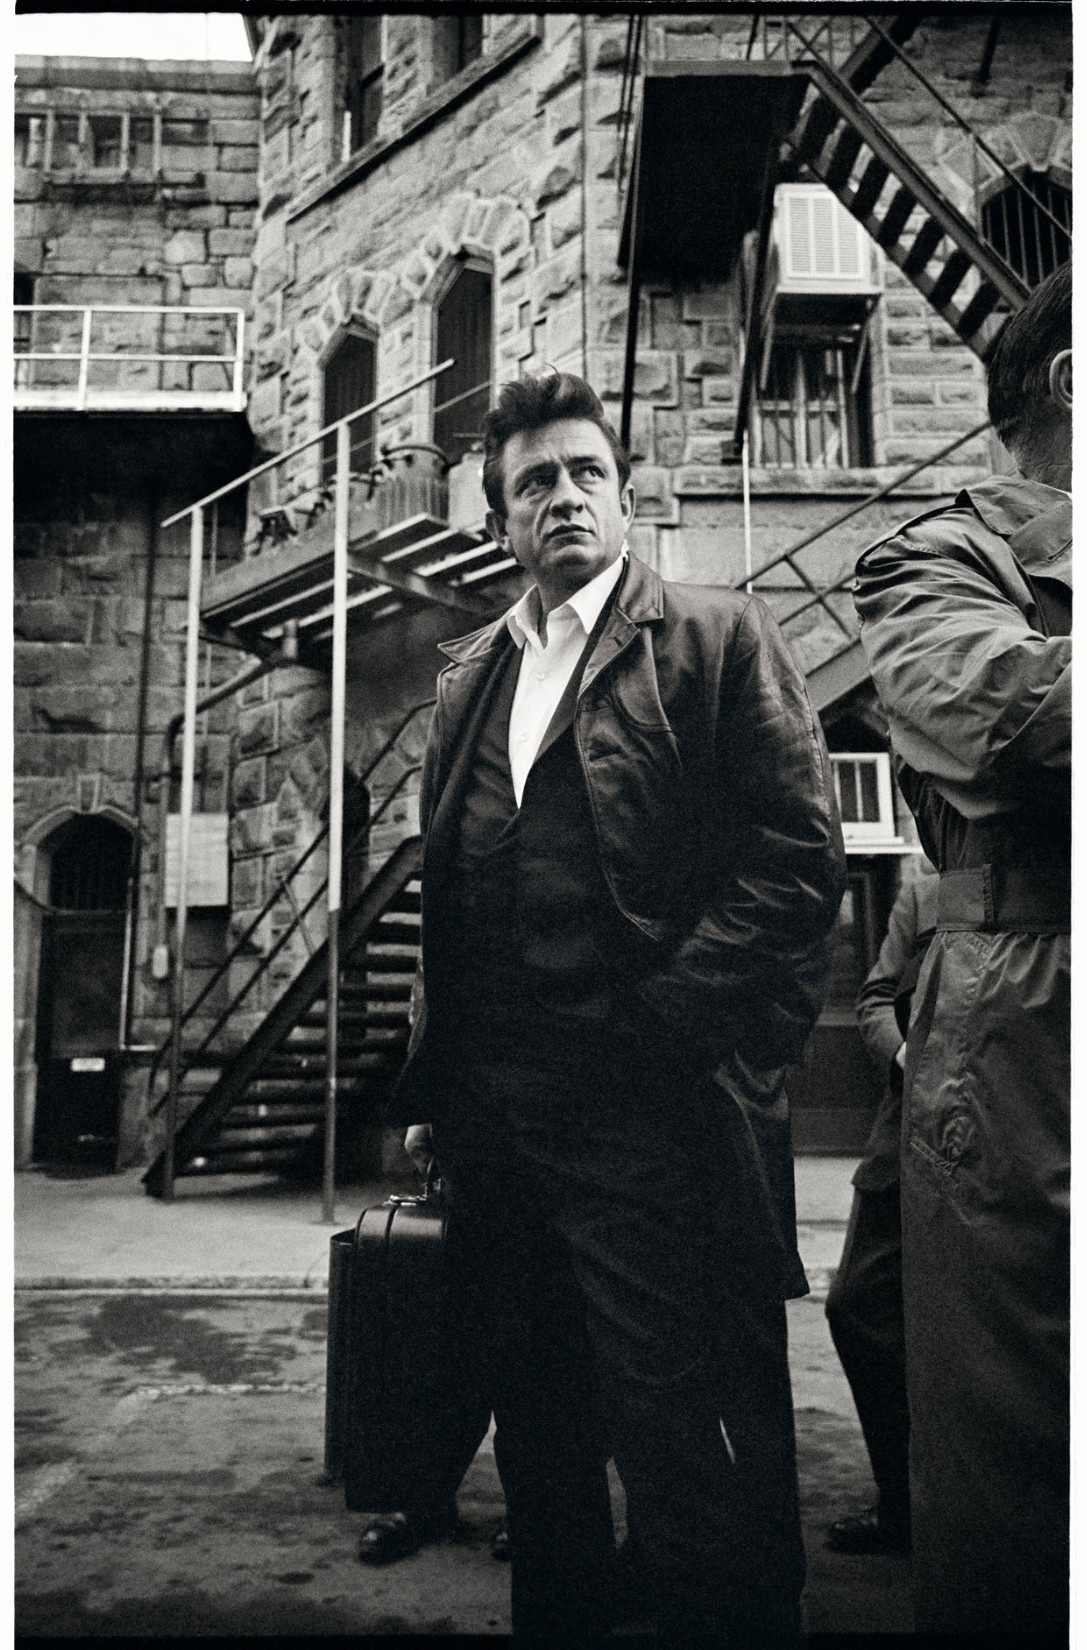 Johnny Cash off the bus at Folsom State Prison, Folsom, California, 1968